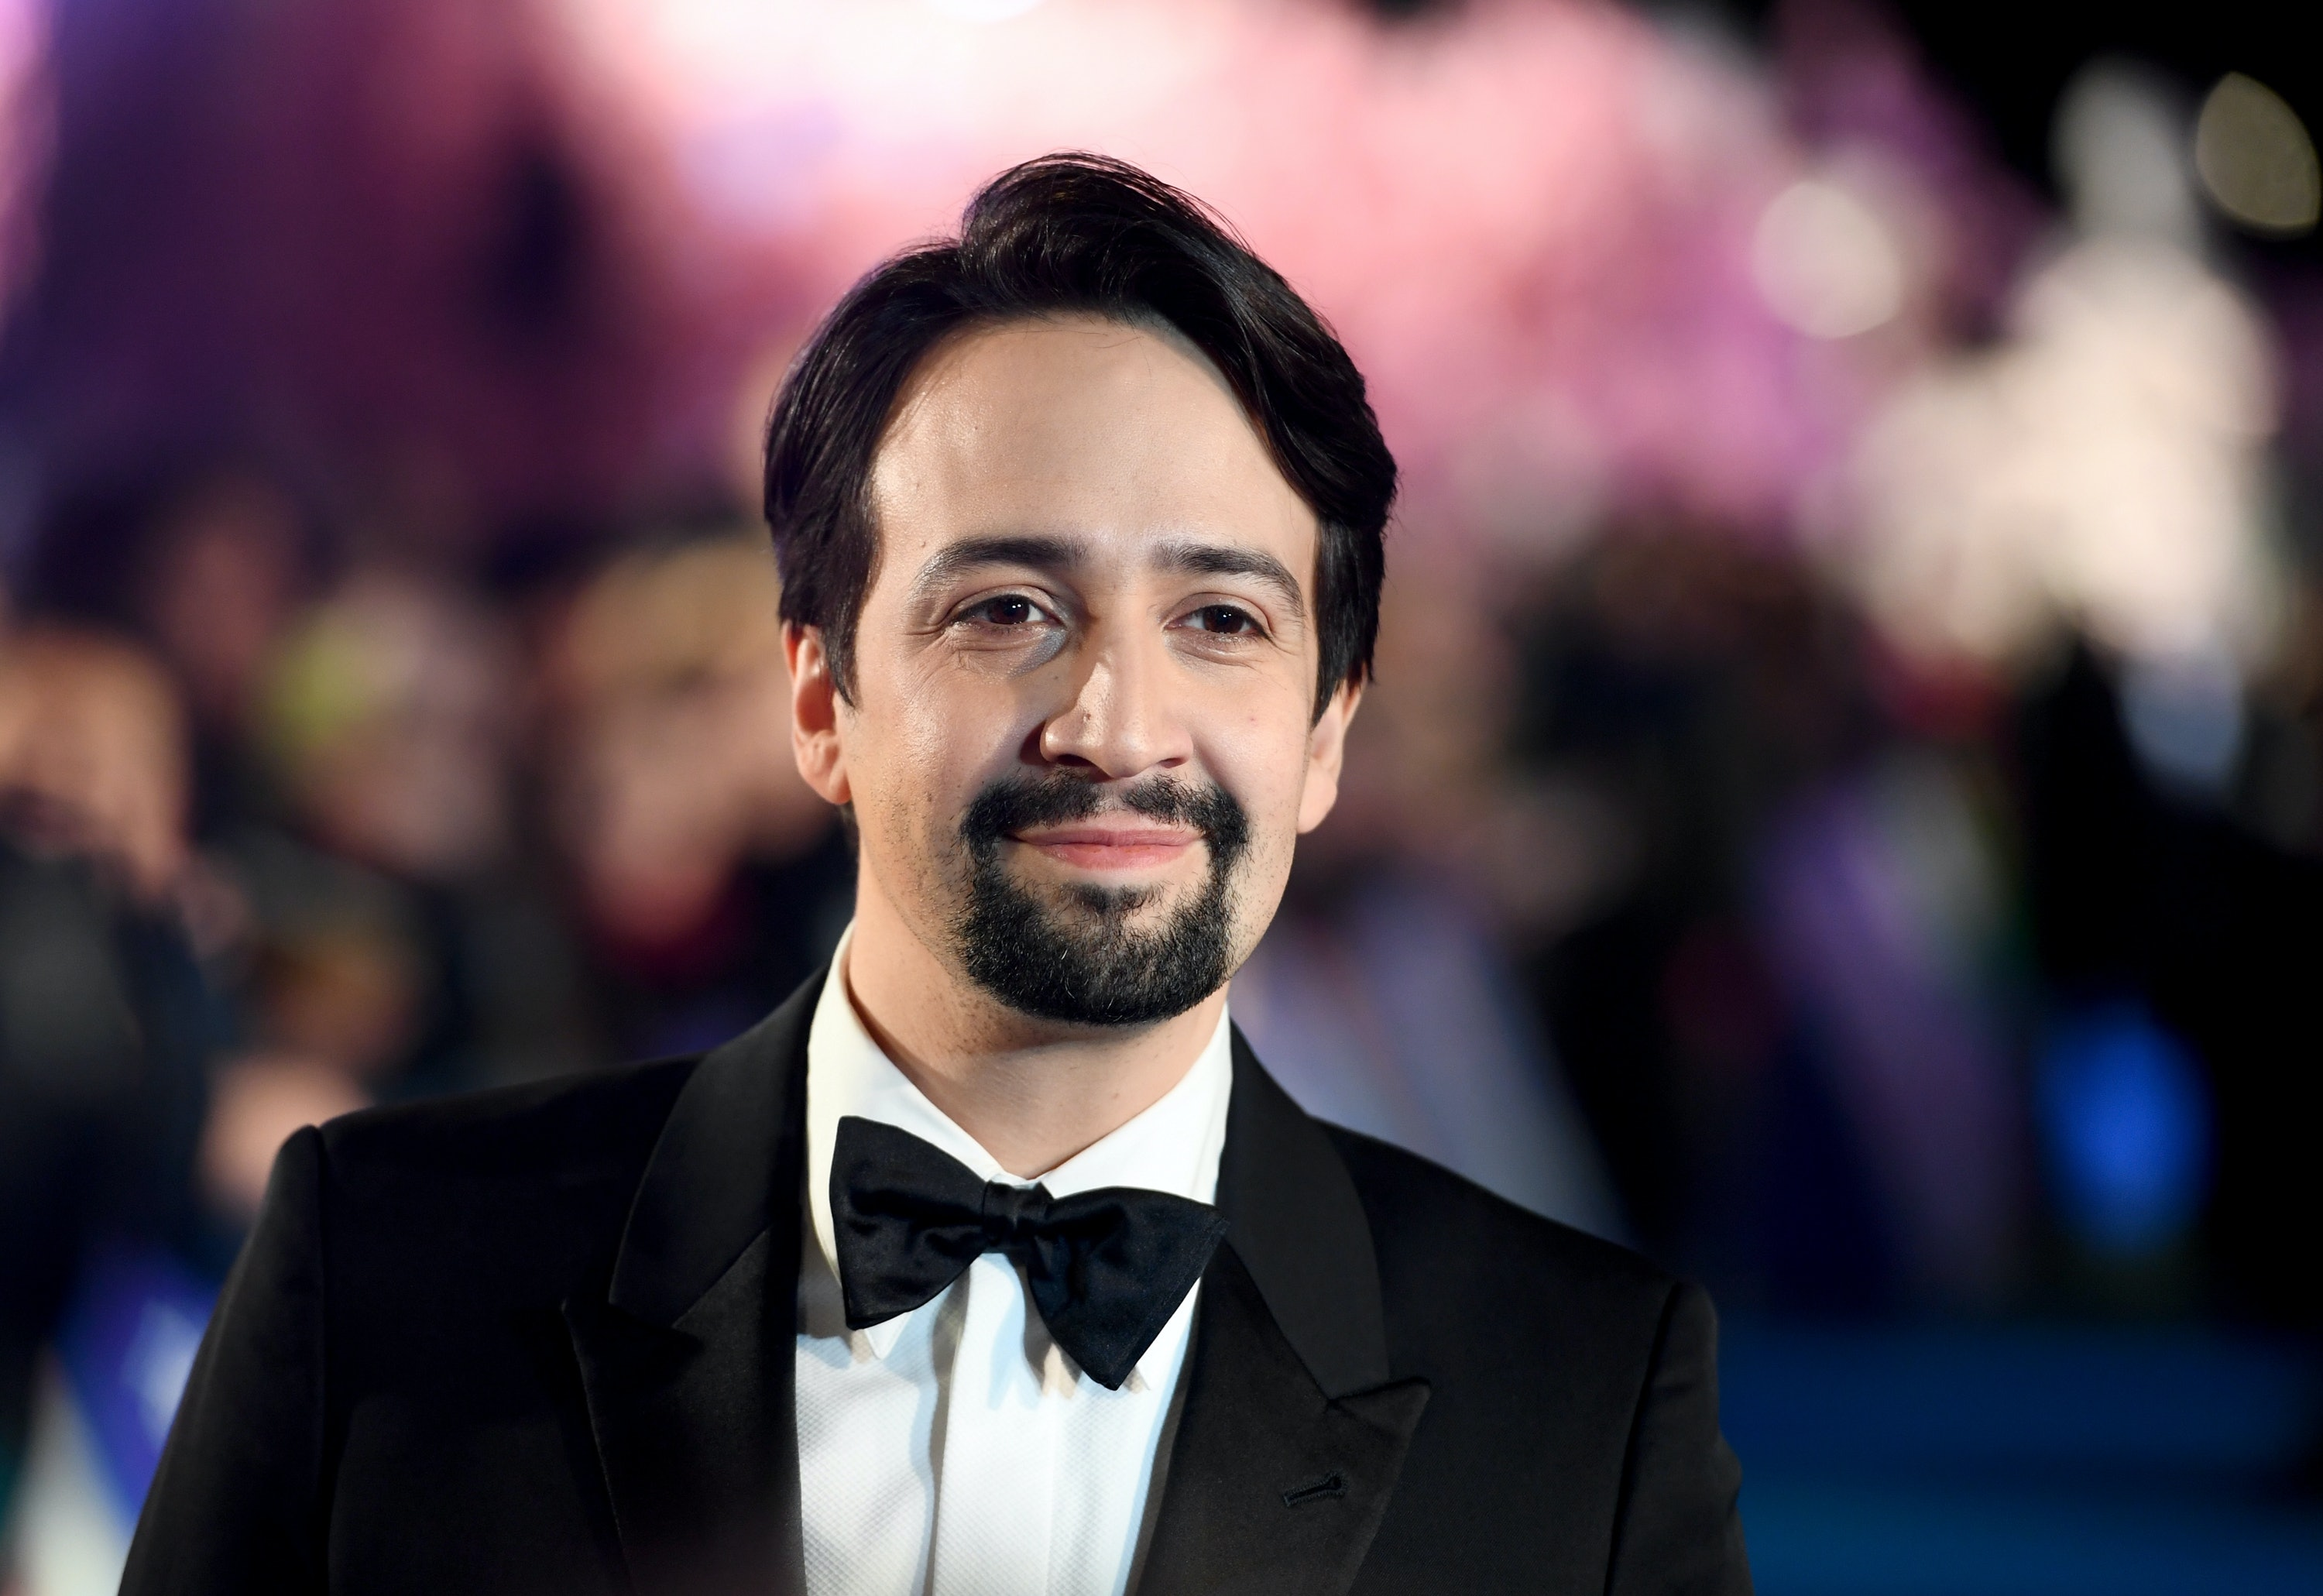 Lin Manuel Miranda Shares The Books He Read While On Vacation They Re Unsurprisingly Excellent Recommendations